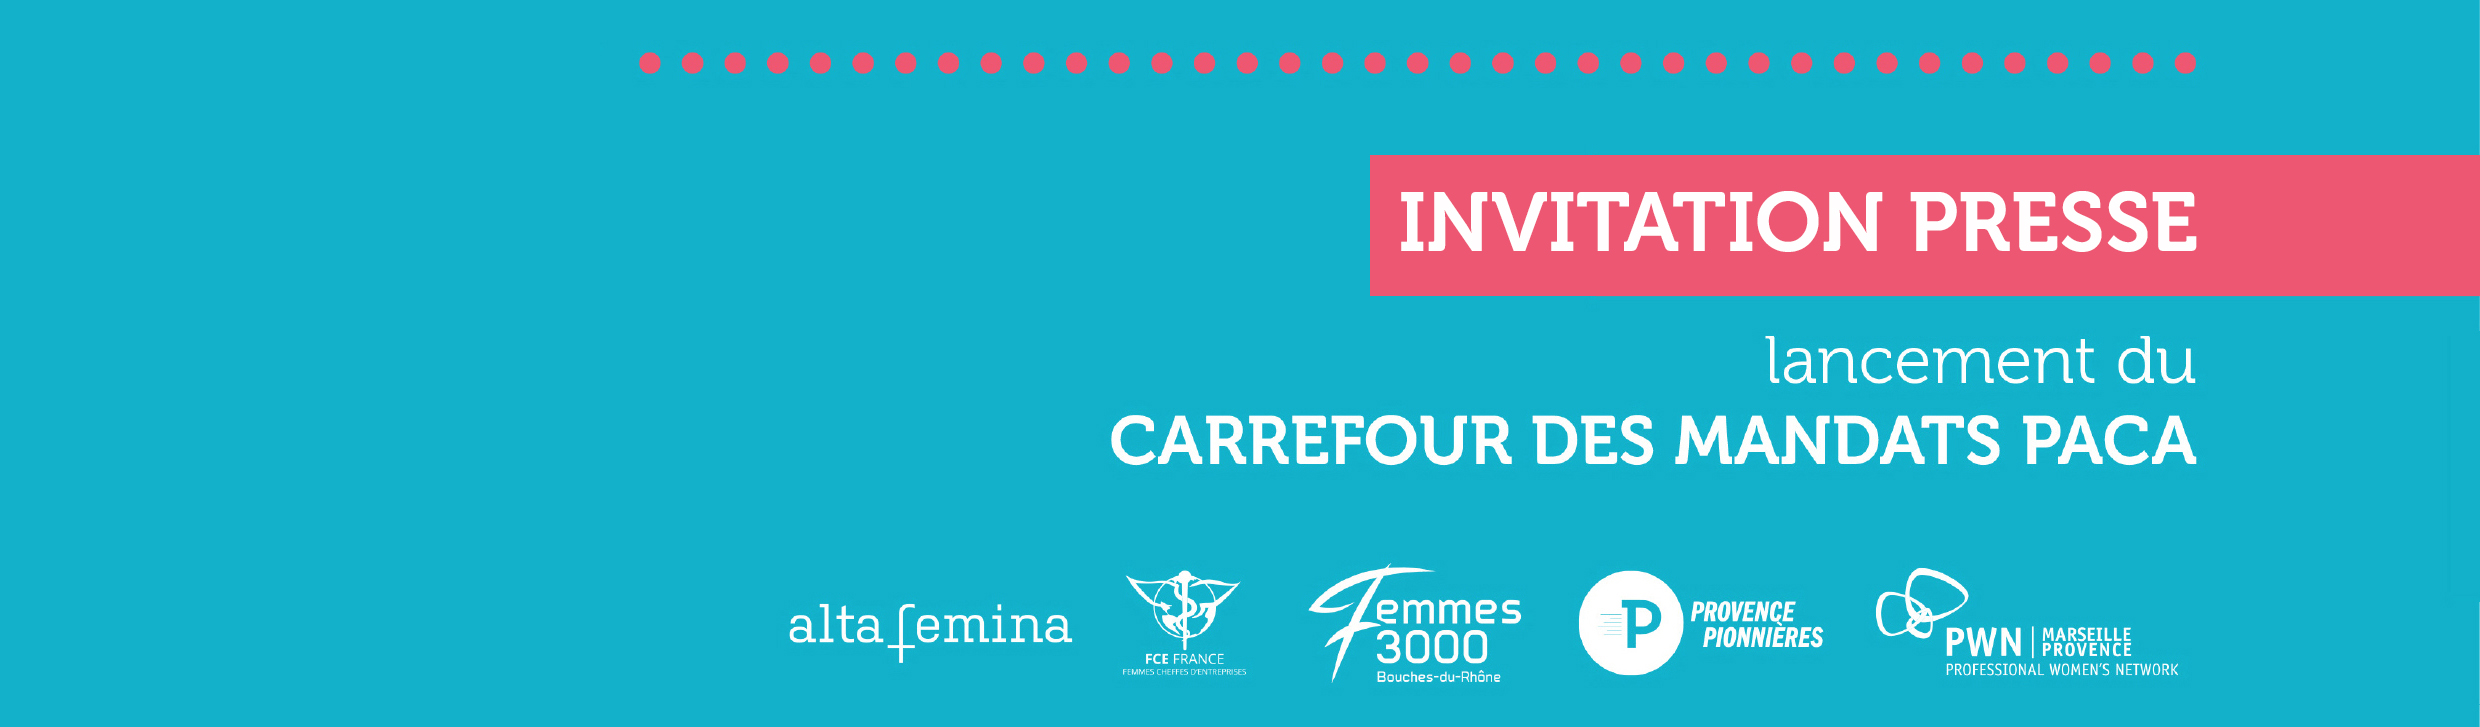 Invitation carrefour des mandats paca